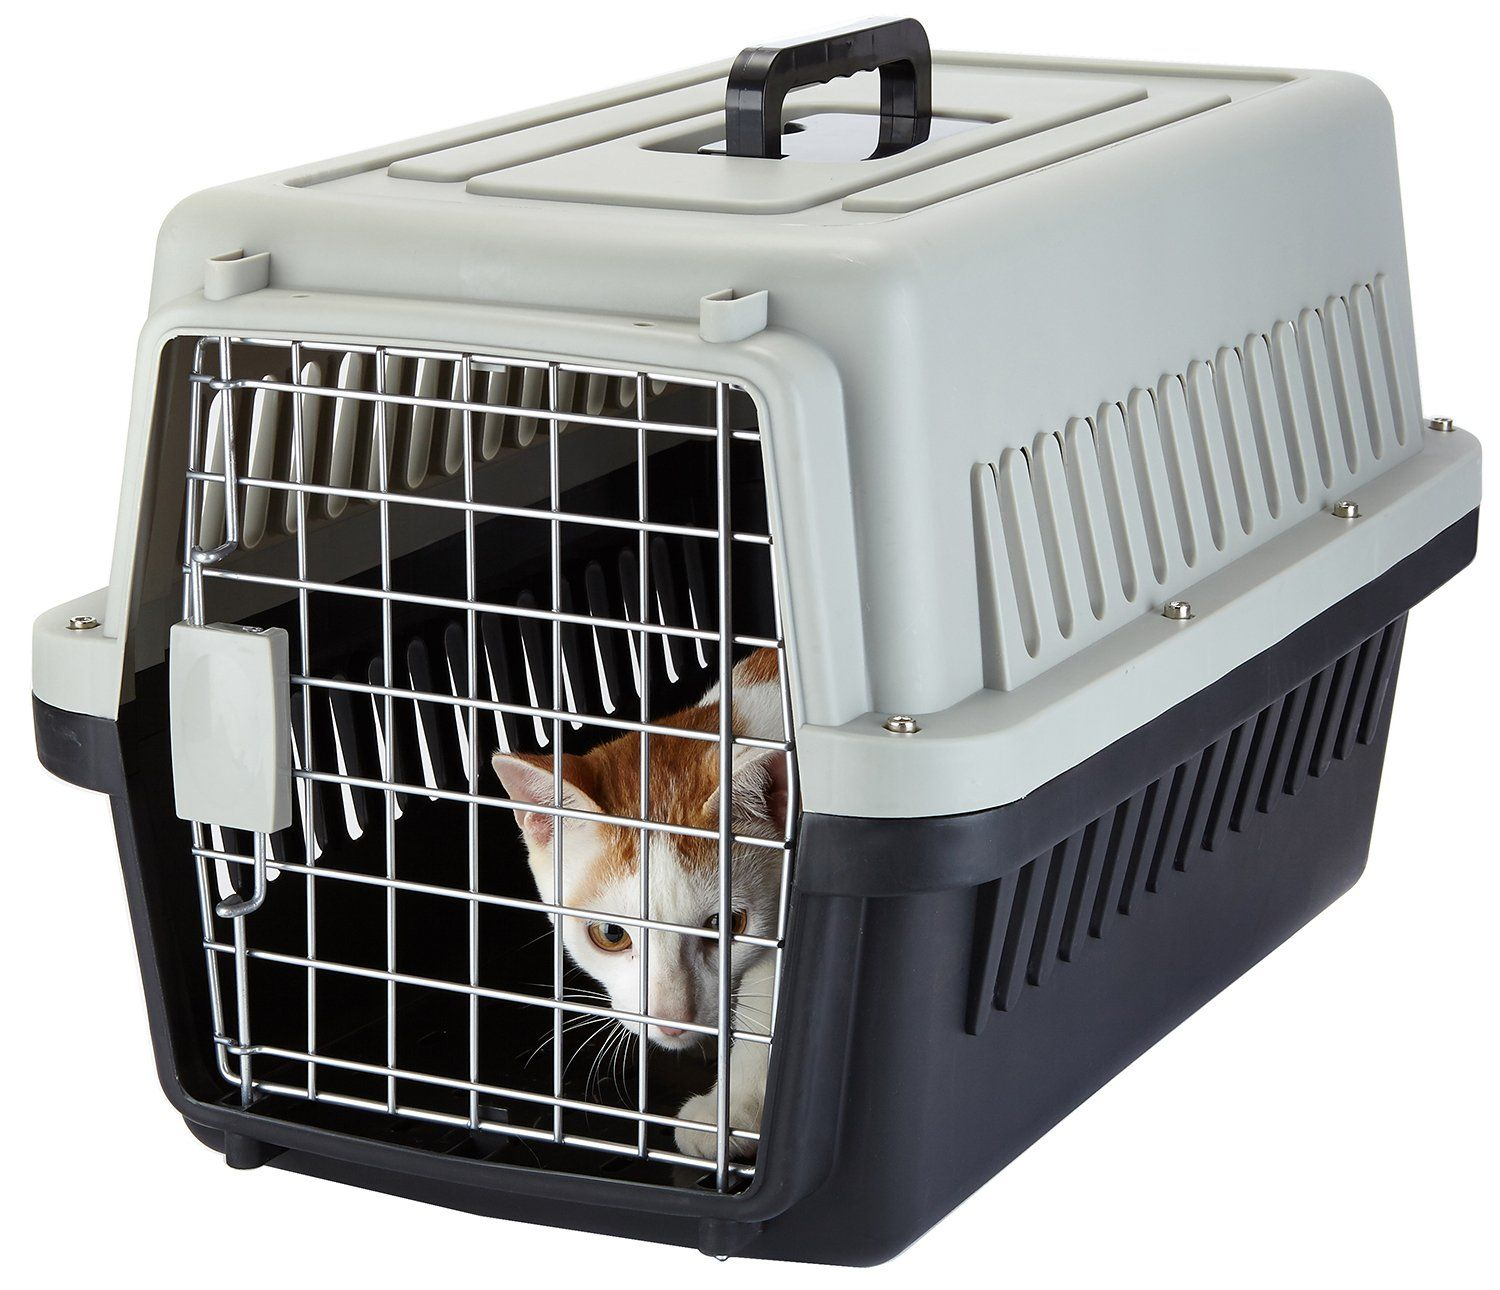 Yvettevans Portable Airline Approved Pet Kennel Cats